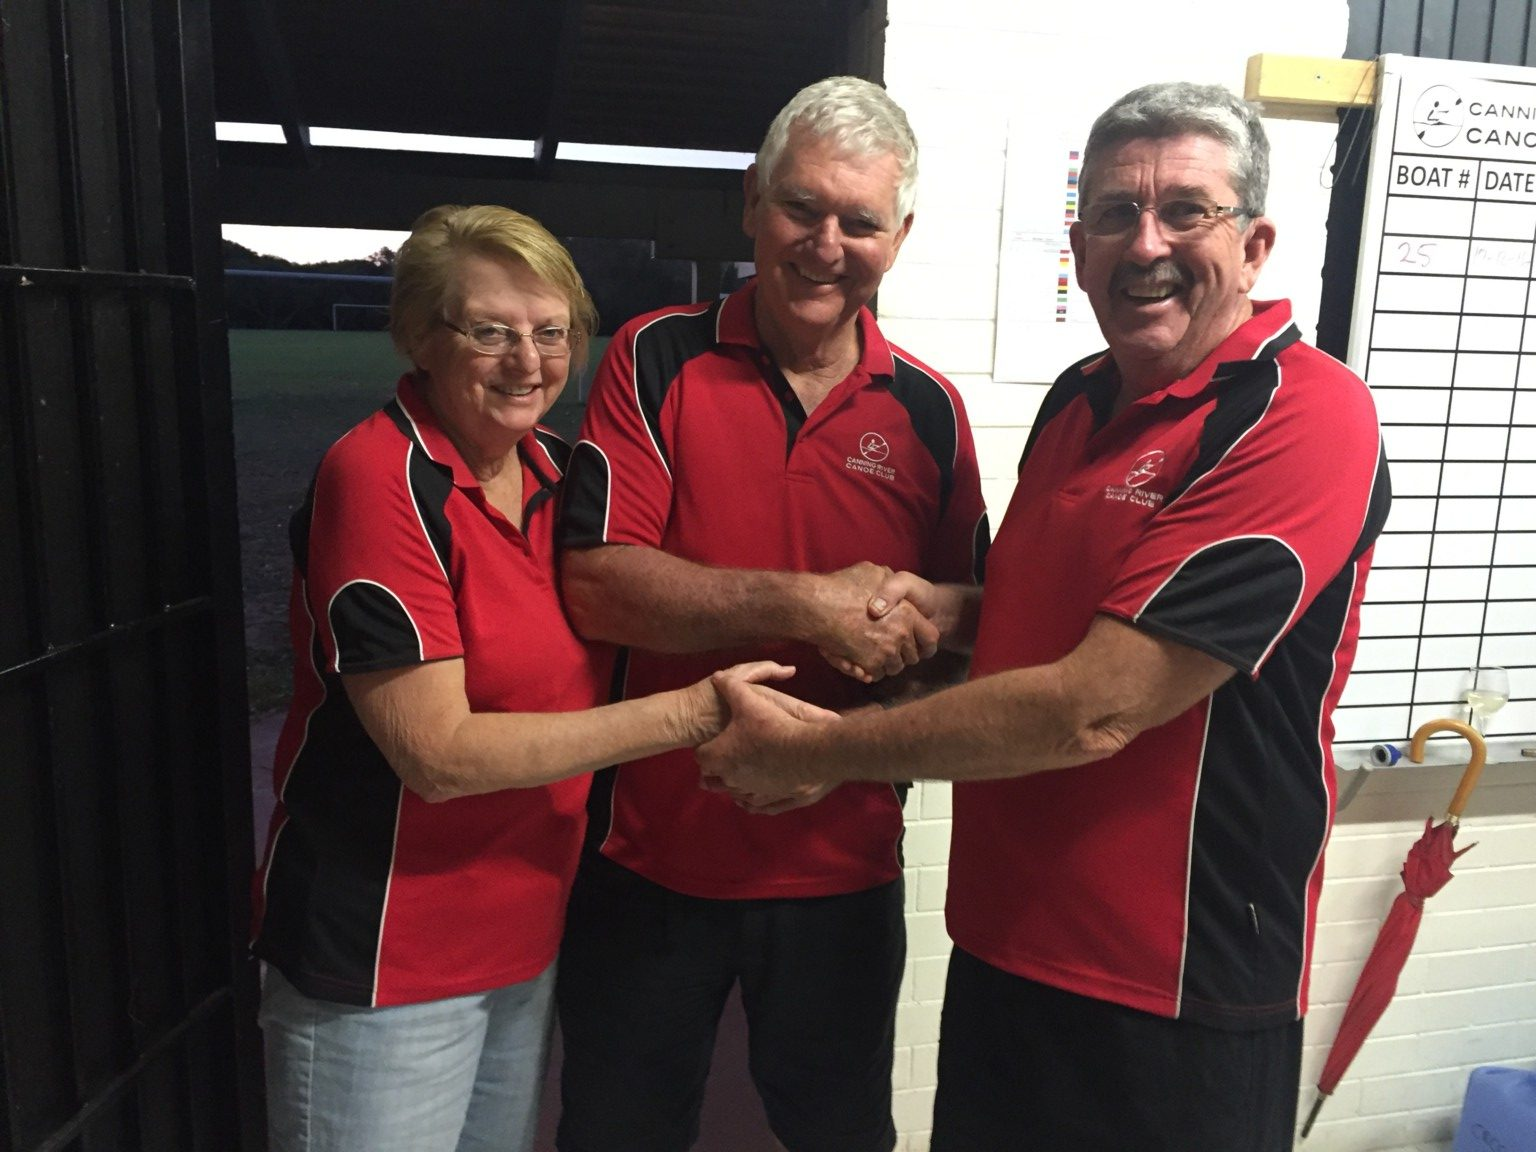 Tuesday 20th December 2016 : Club Committee member David Griffiths presenting tonights winners Jerry and Marg Alderson with movie vouchers